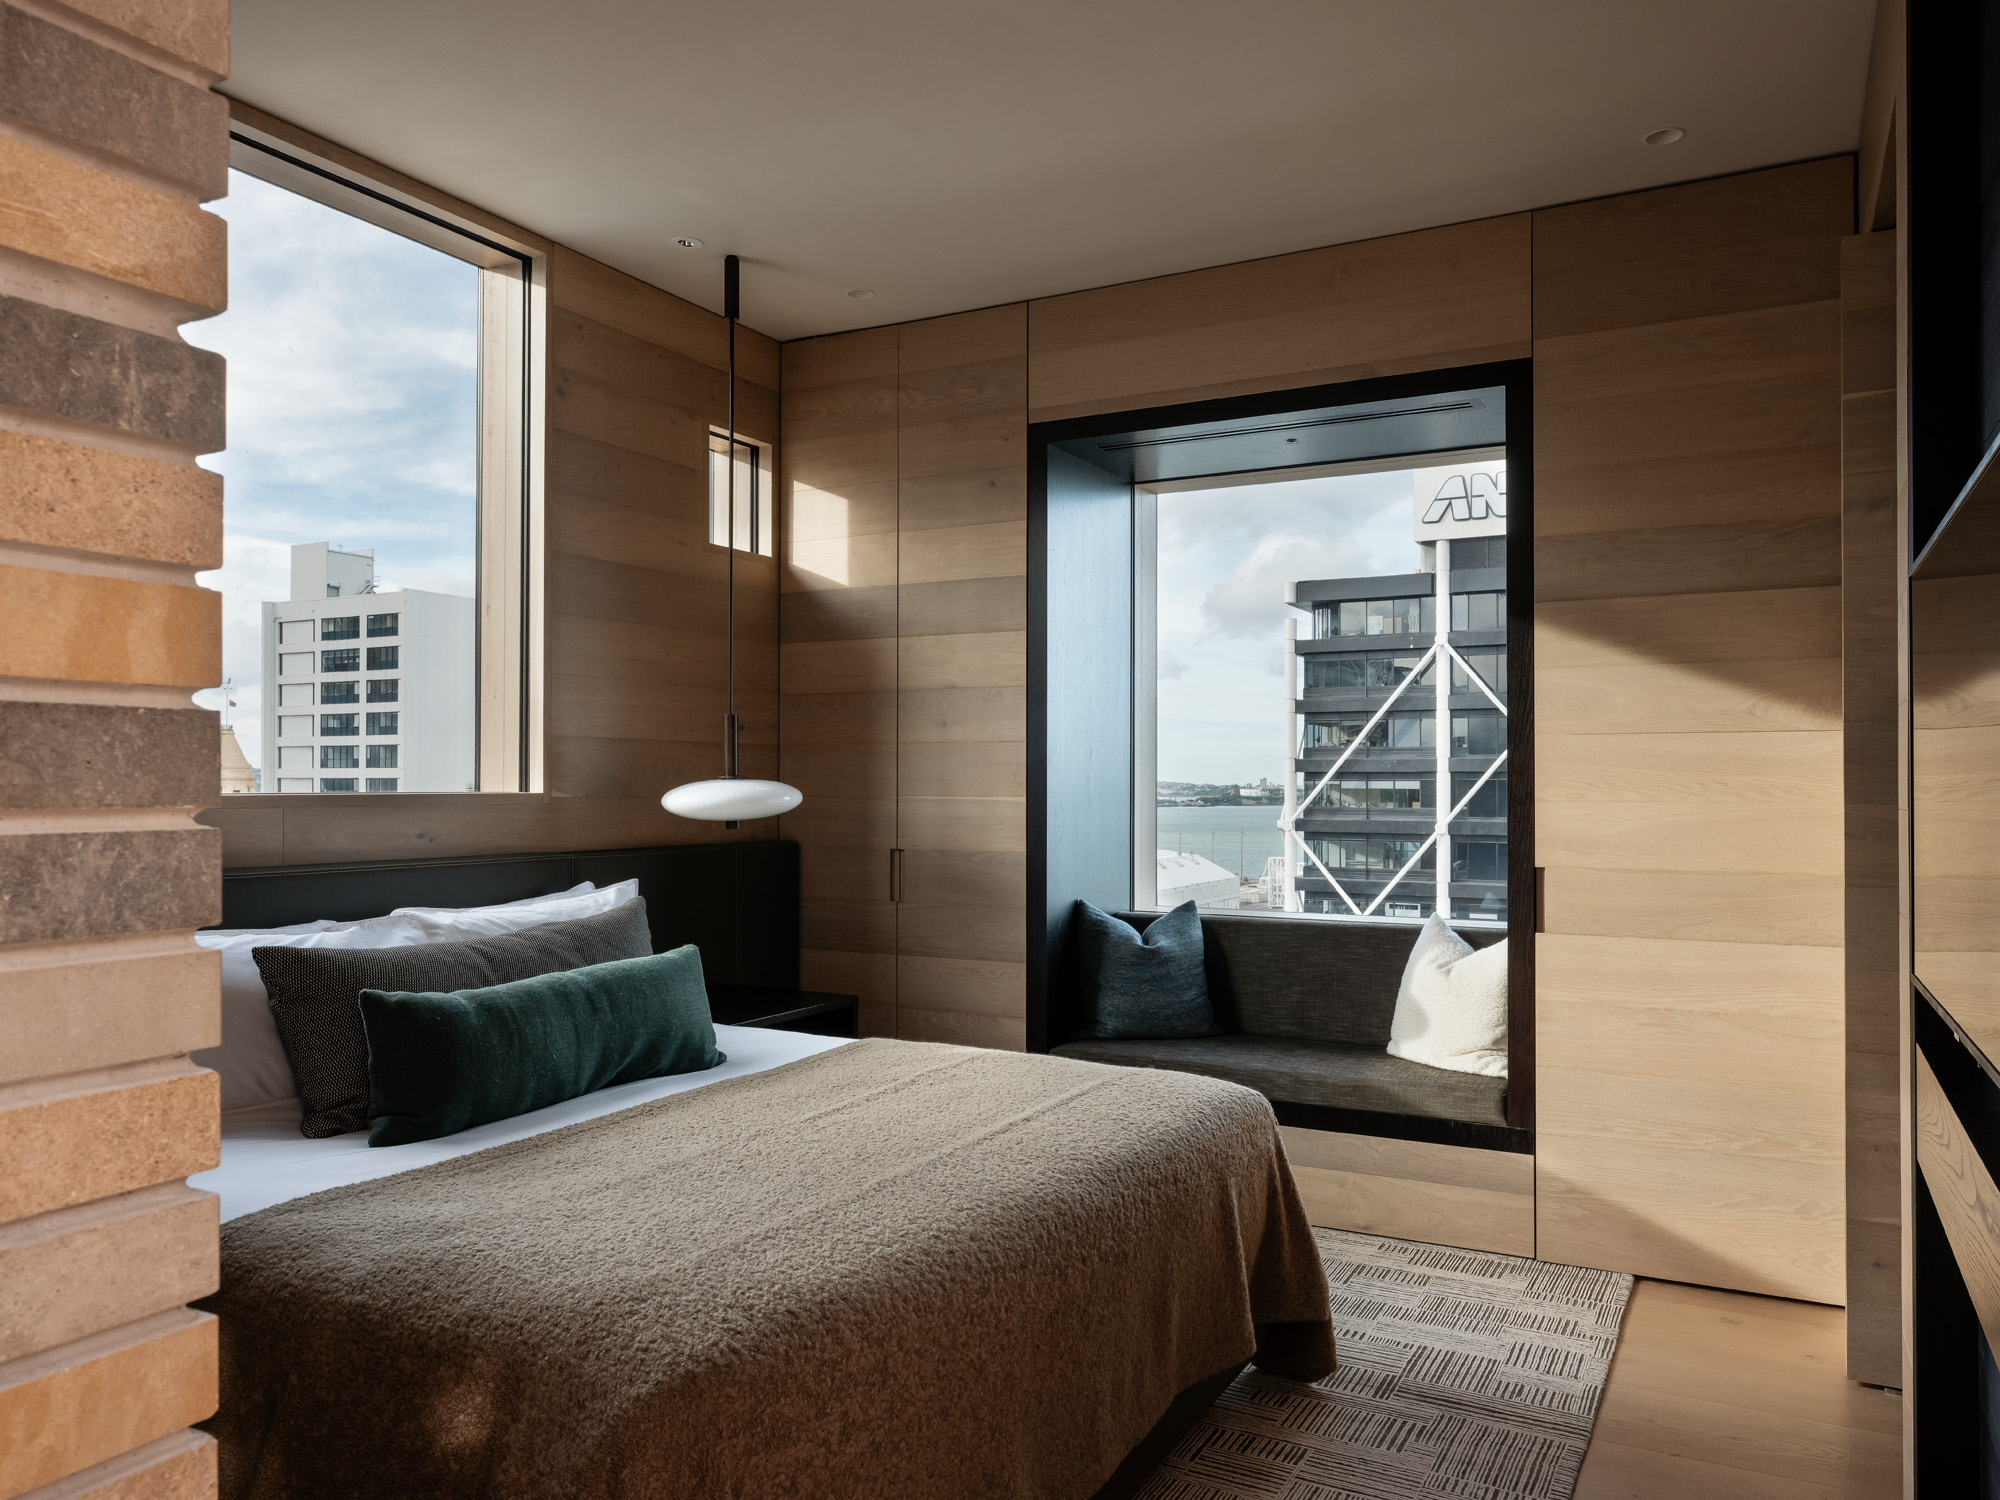 Wairoa suite bedroom with window seat facing out to city - The Landing Suites at The Hotel Britomart